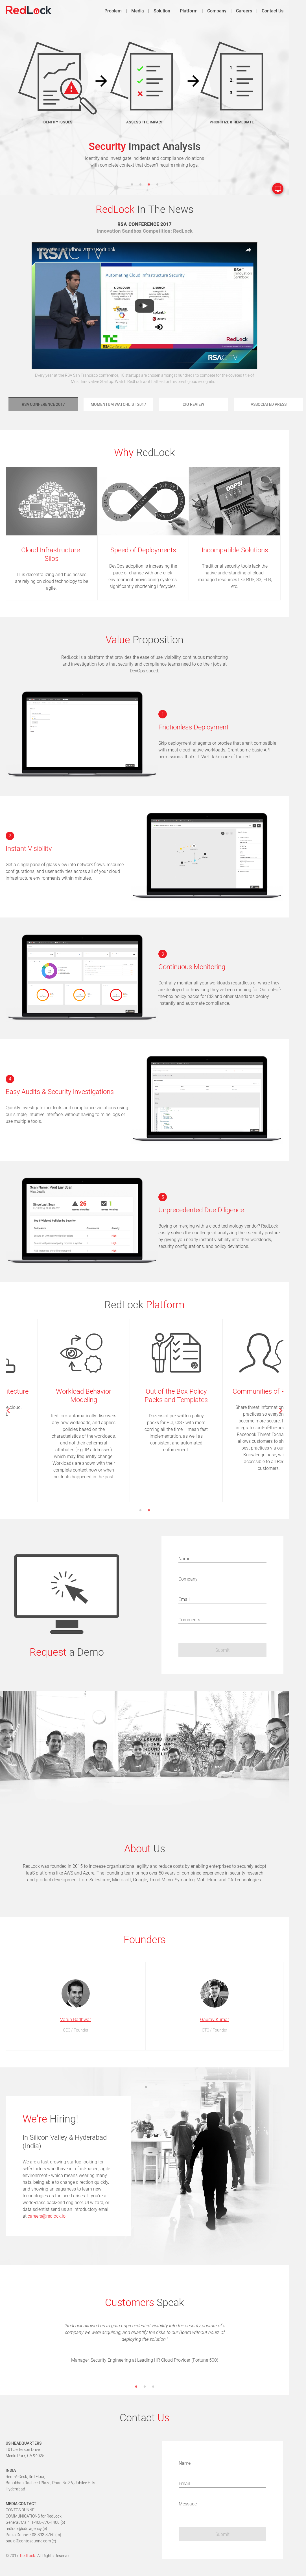 RedLock Competitors, Revenue and Employees - Owler Company Profile